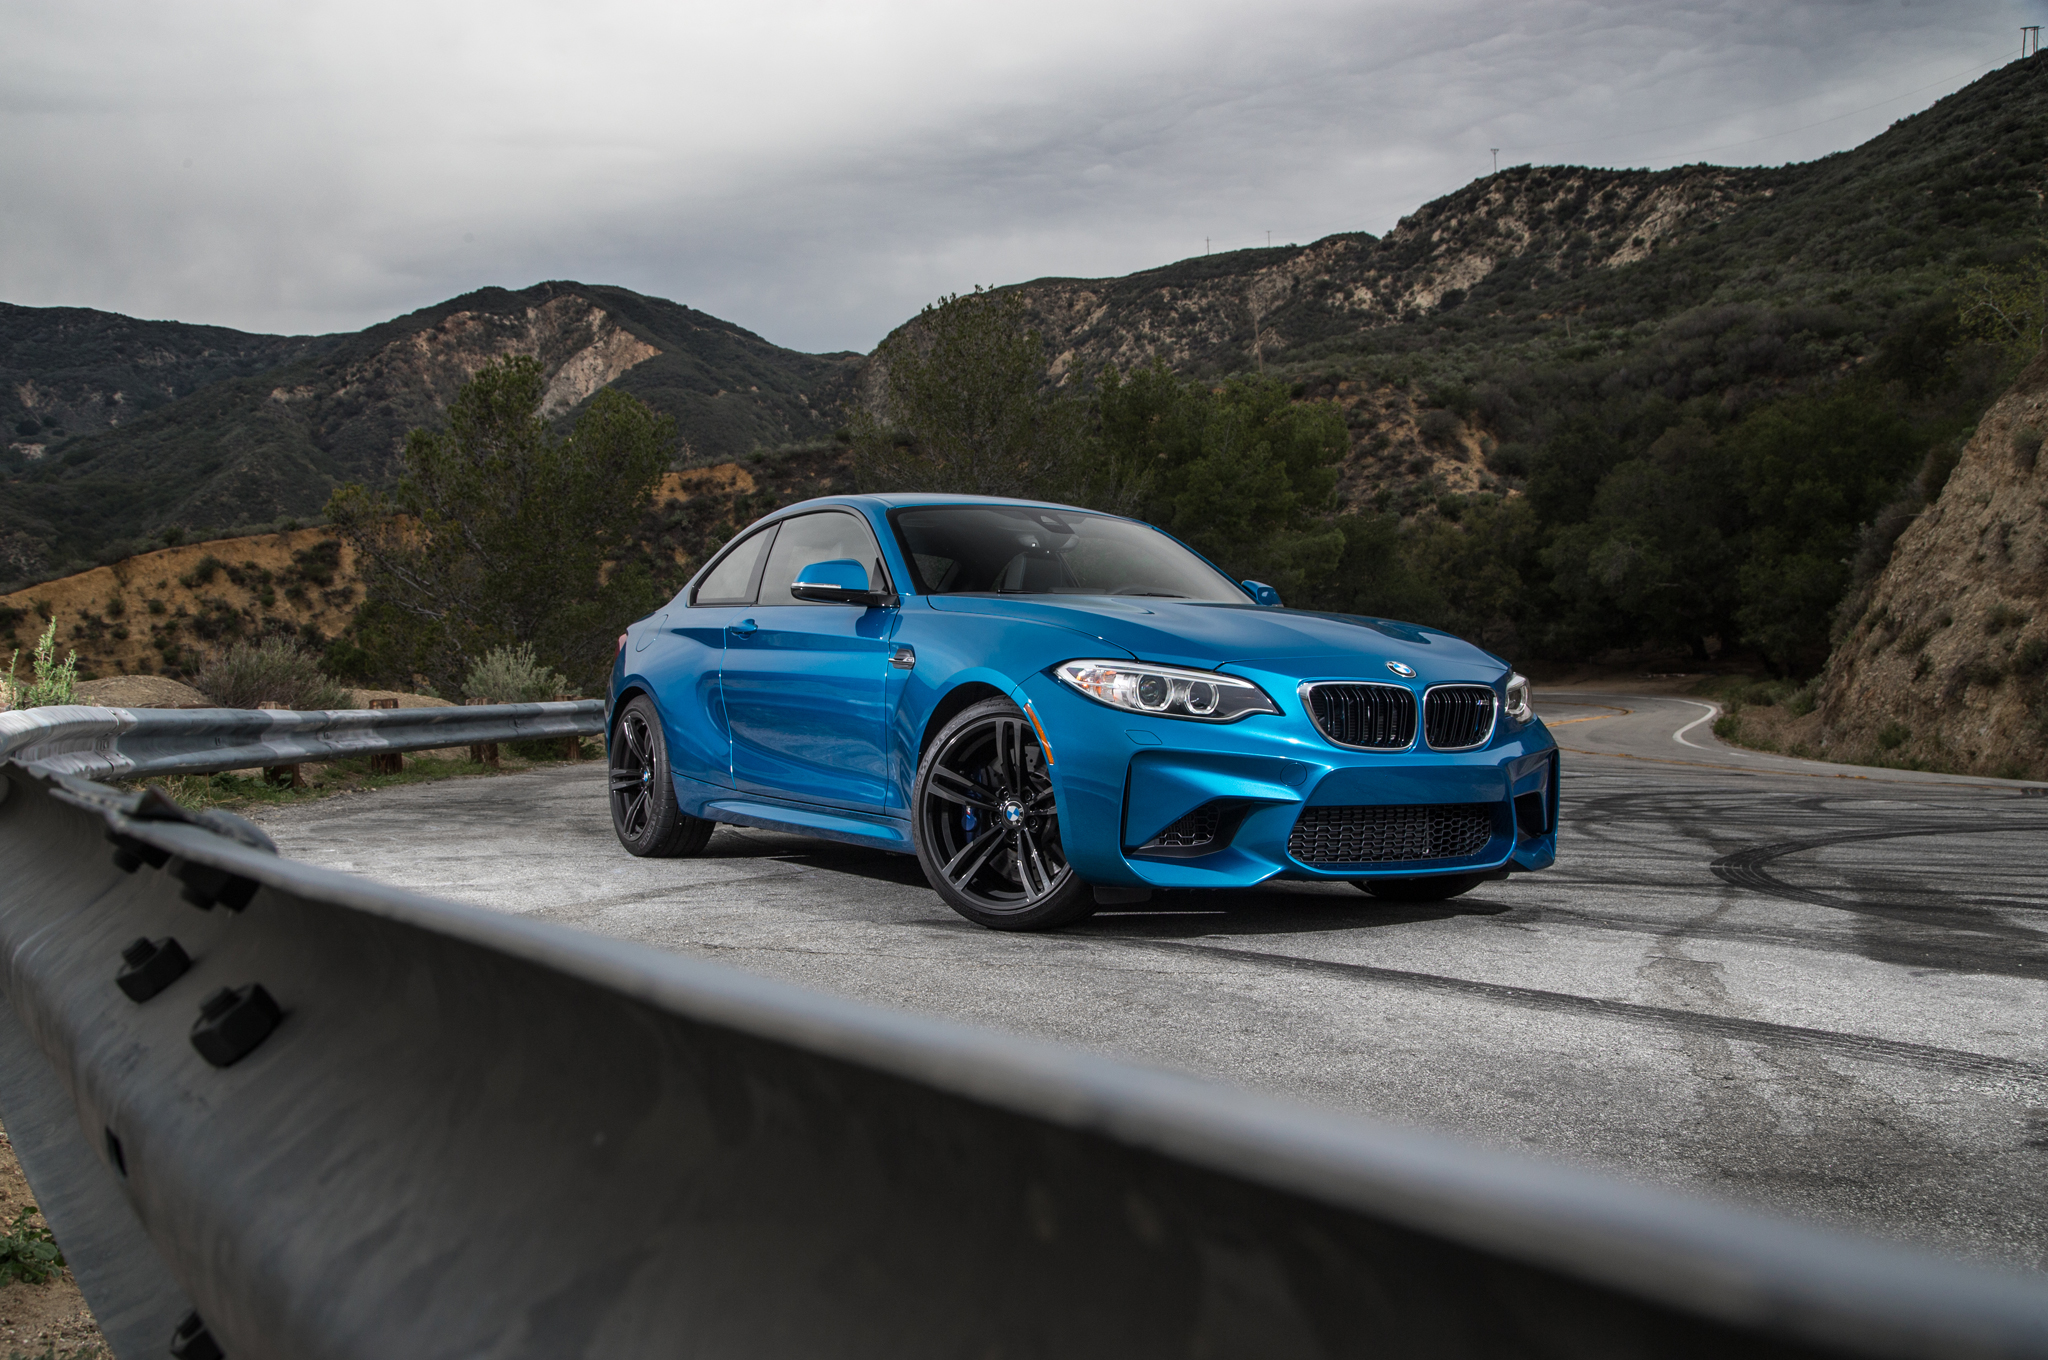 2016 BMW M2 Exterior Blue Metallic (Photo 19 of 61)